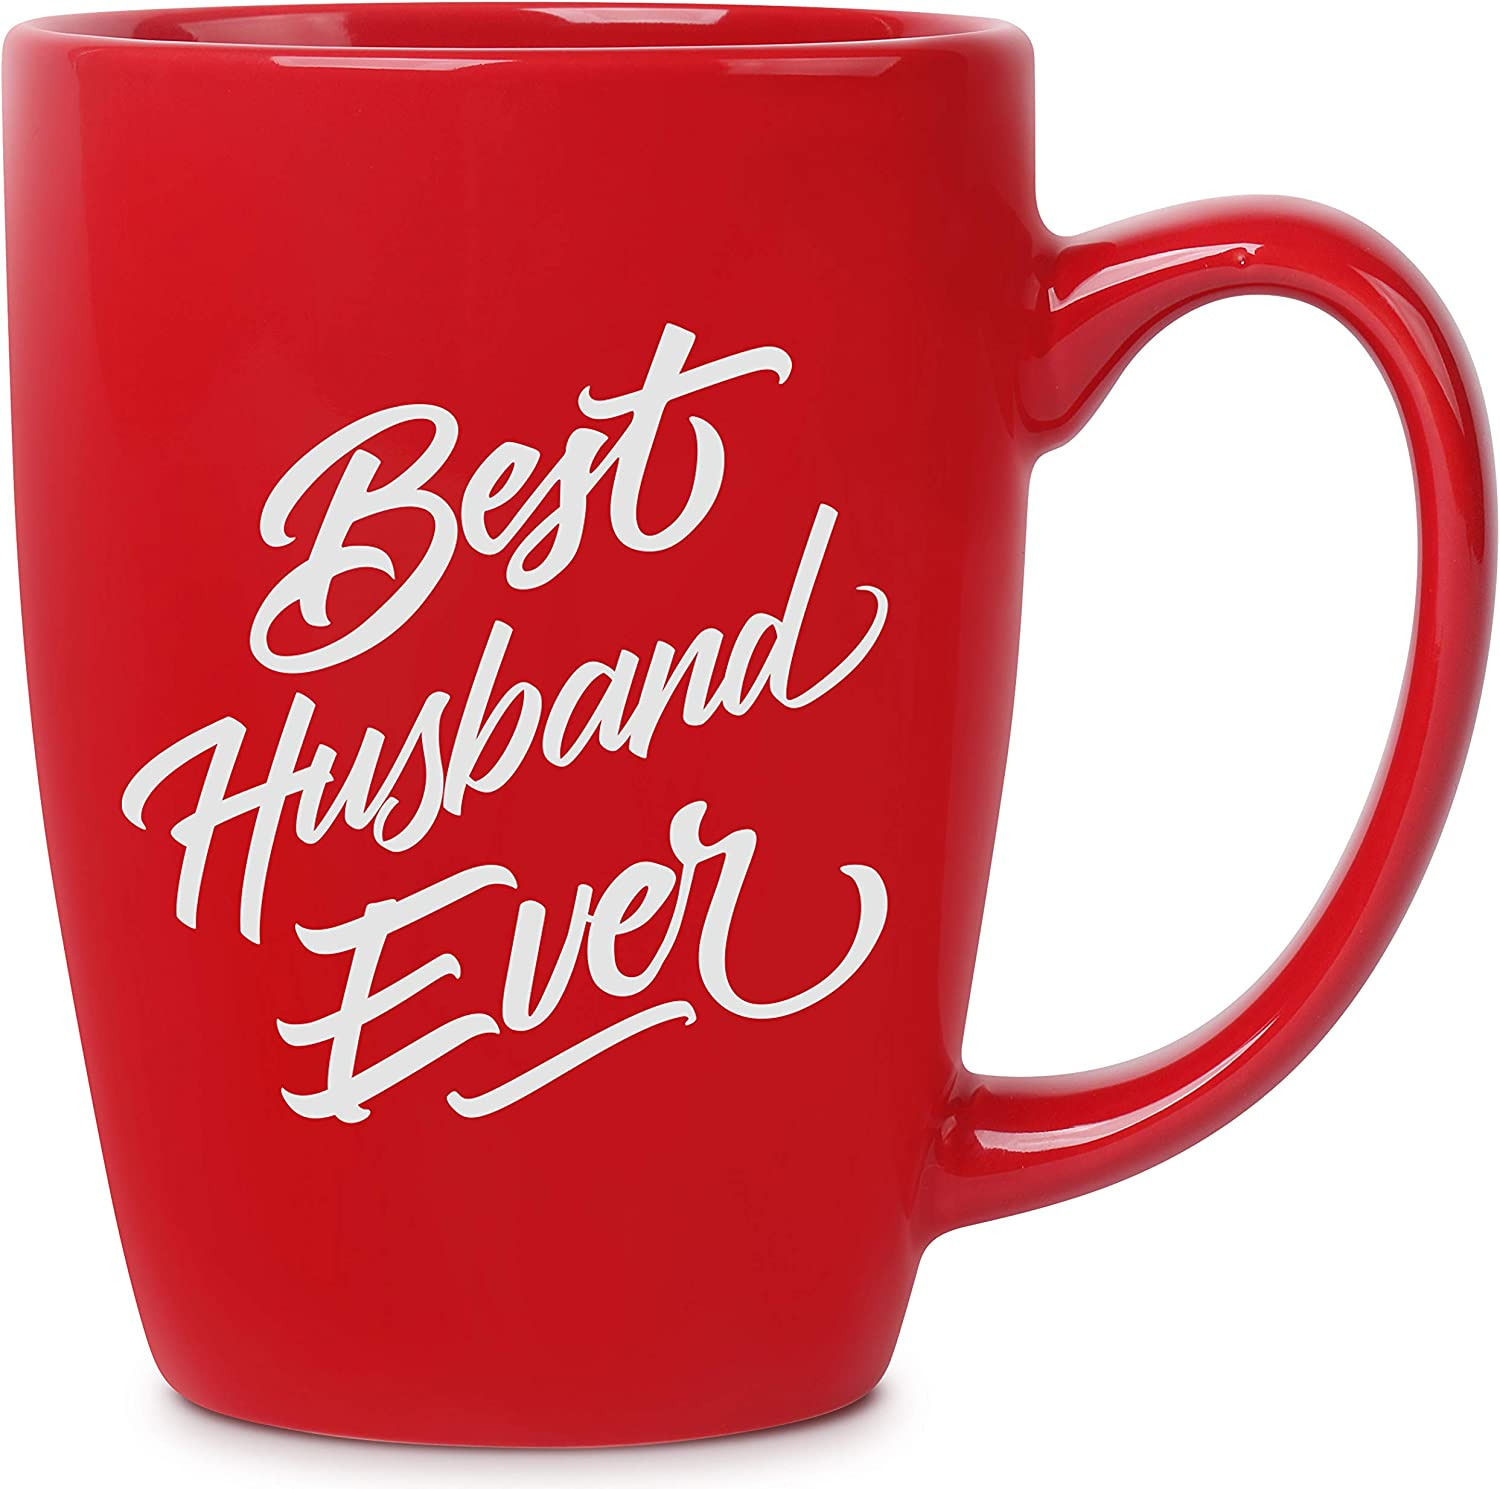 Amazon Com Best Husband Ever 14 Oz Red Bistro Coffee Mug Best Gift Ideas For Husband Him Birthday Christmas Valentines Anniversary Fathers Day Funny Novelty Present Unique Mugs